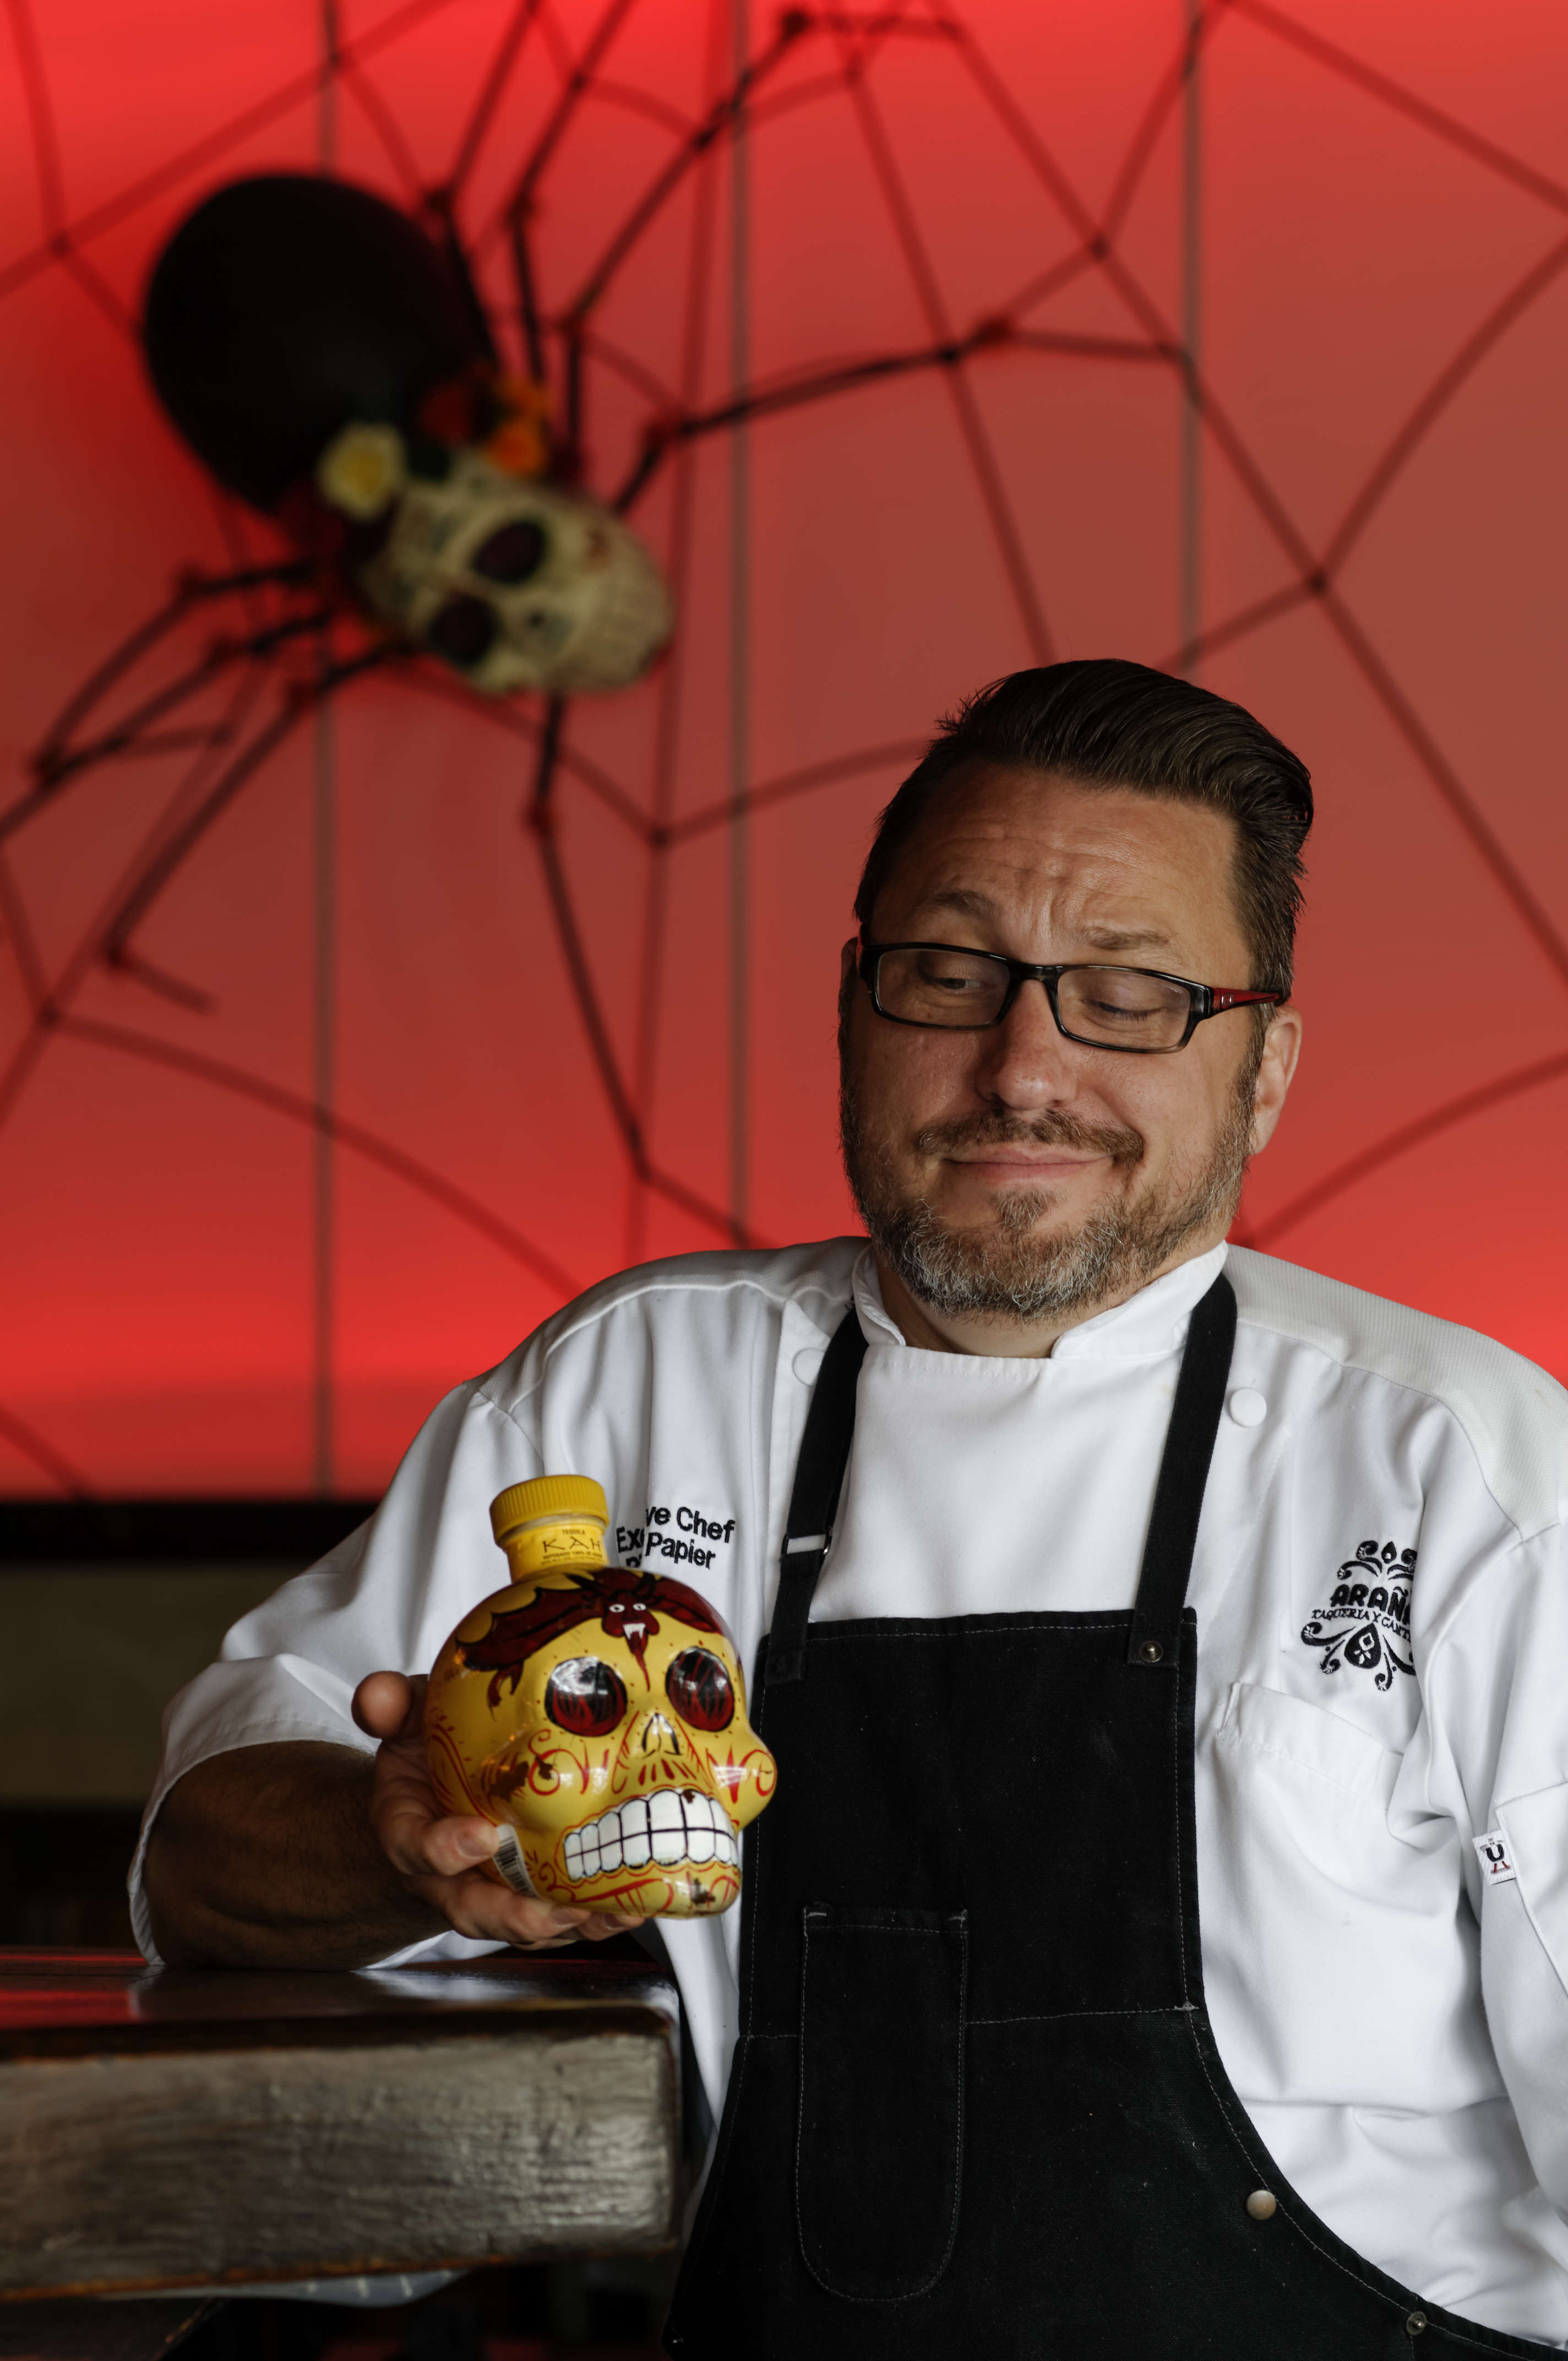 10 Years After Katrina, a Chef Comes Home